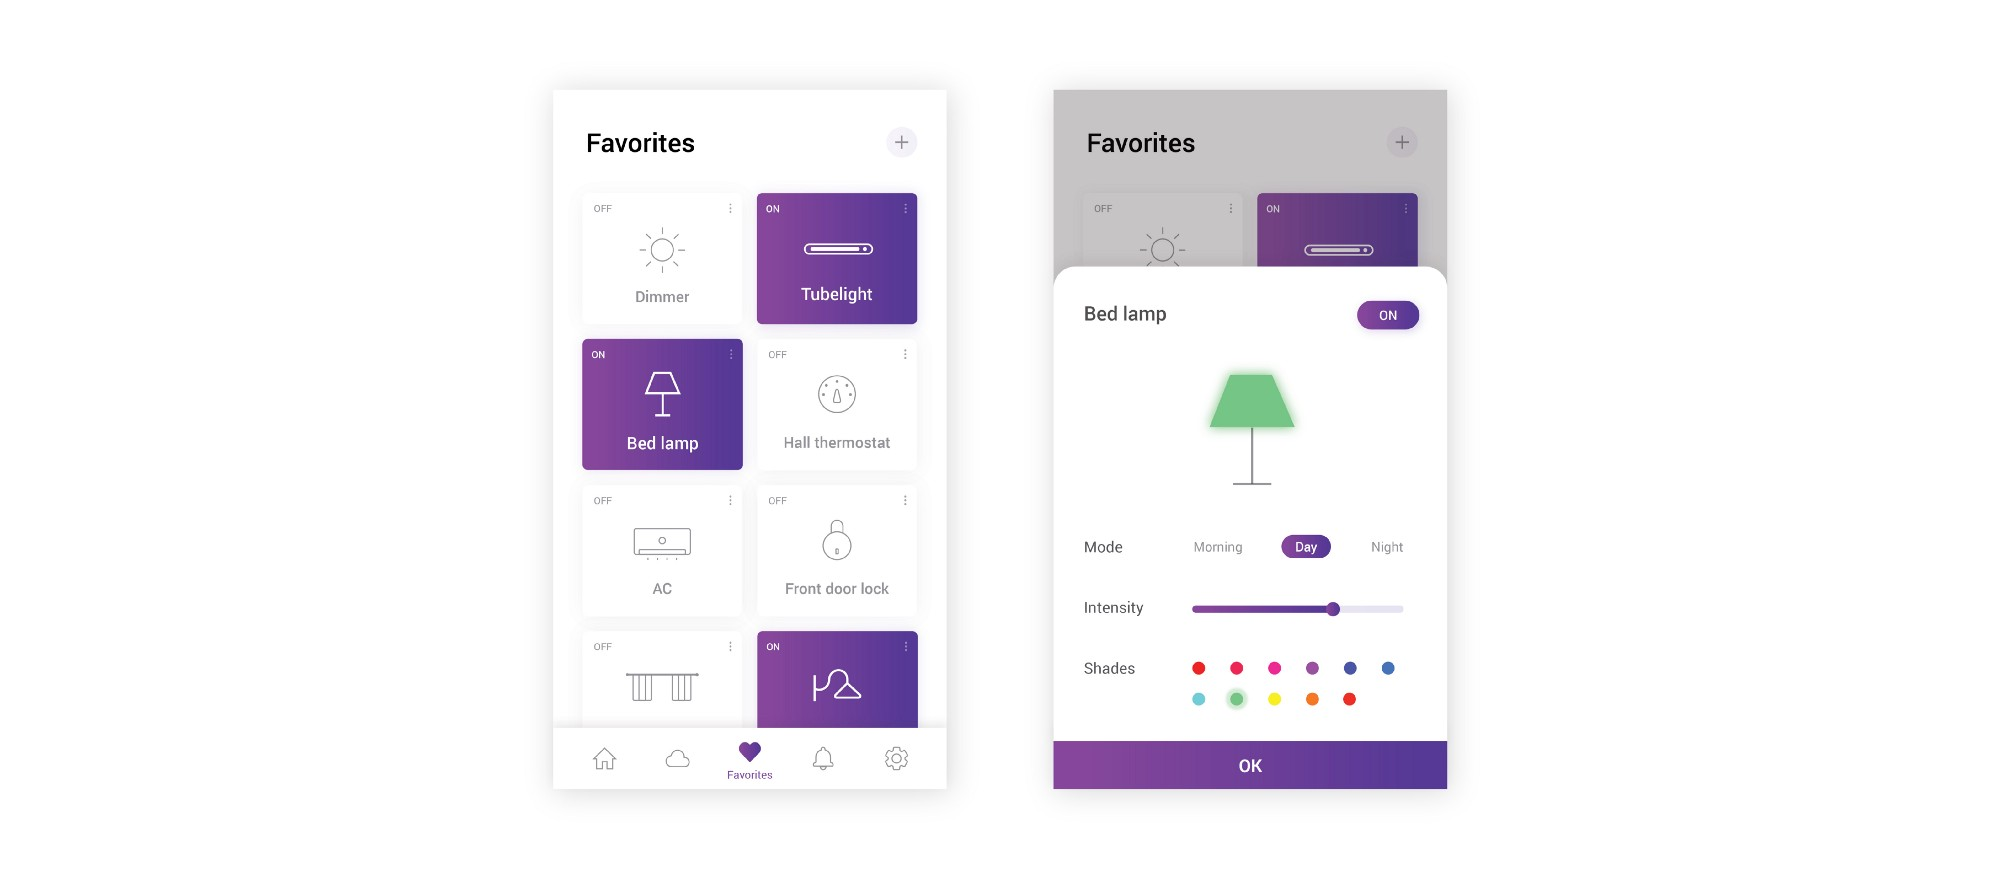 How I Designed Otomate Smart Home App Prototypr Design And Development Of An Automated Control System Using The Favorites Section Is A Dashboard Frequently Used Devices For Quick Access To Their Settings On Touching Particular Device Bottom Slider Comes